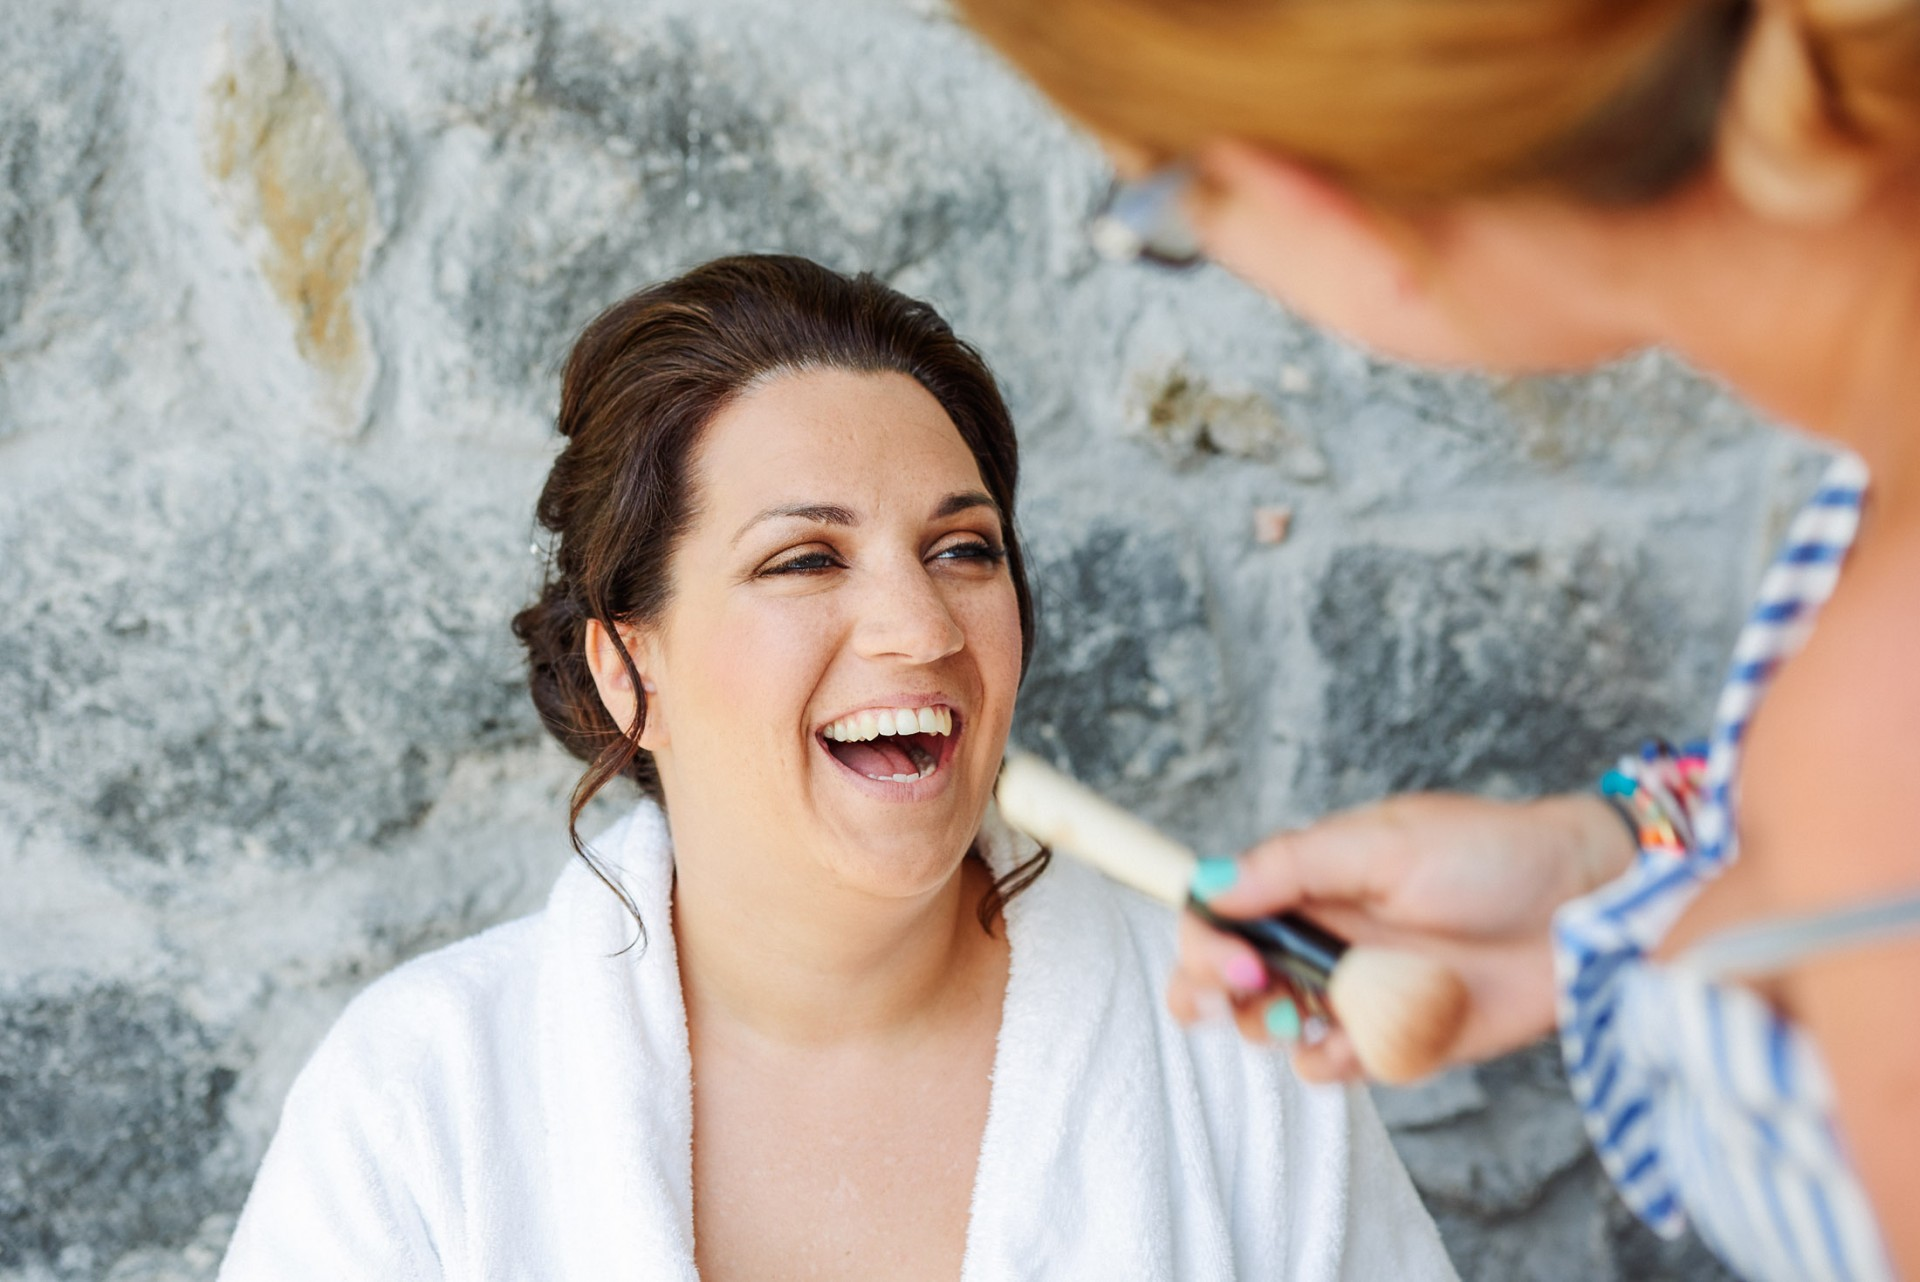 bride laughing whilst having her makeup applied in front of a grey stone wall